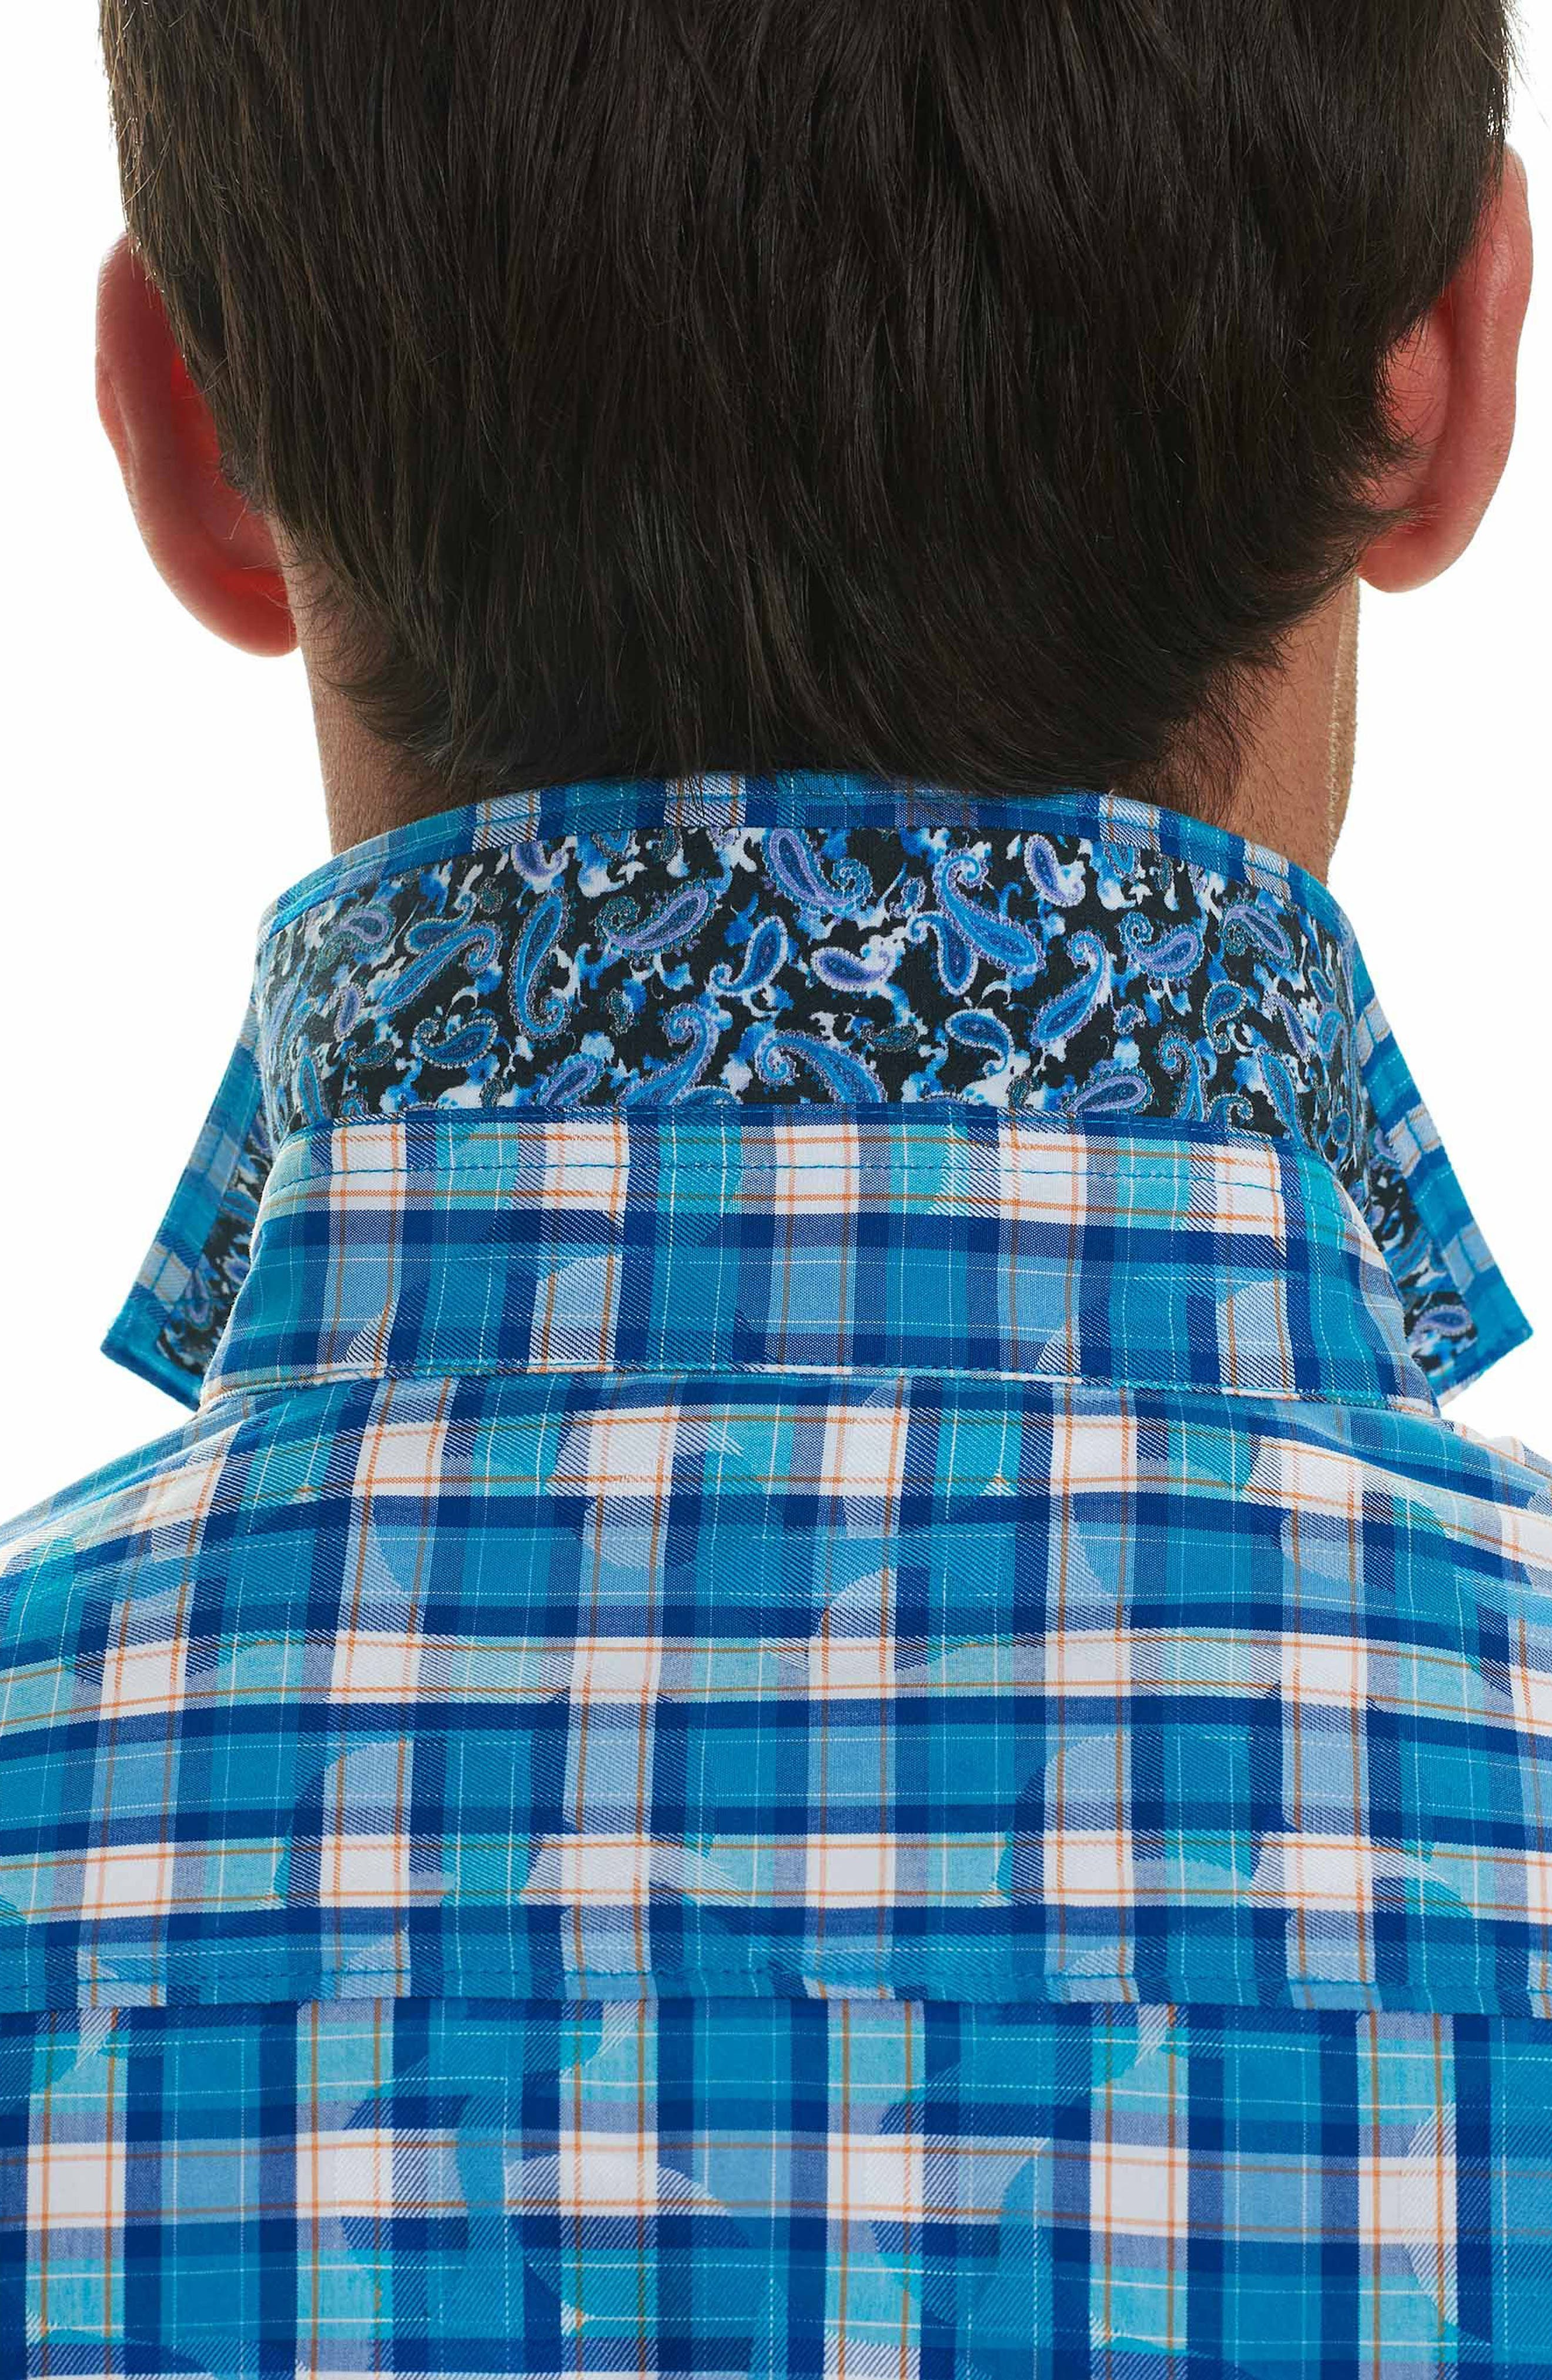 Tangier Classic Fit Print Sport Shirt,                             Alternate thumbnail 7, color,                             444